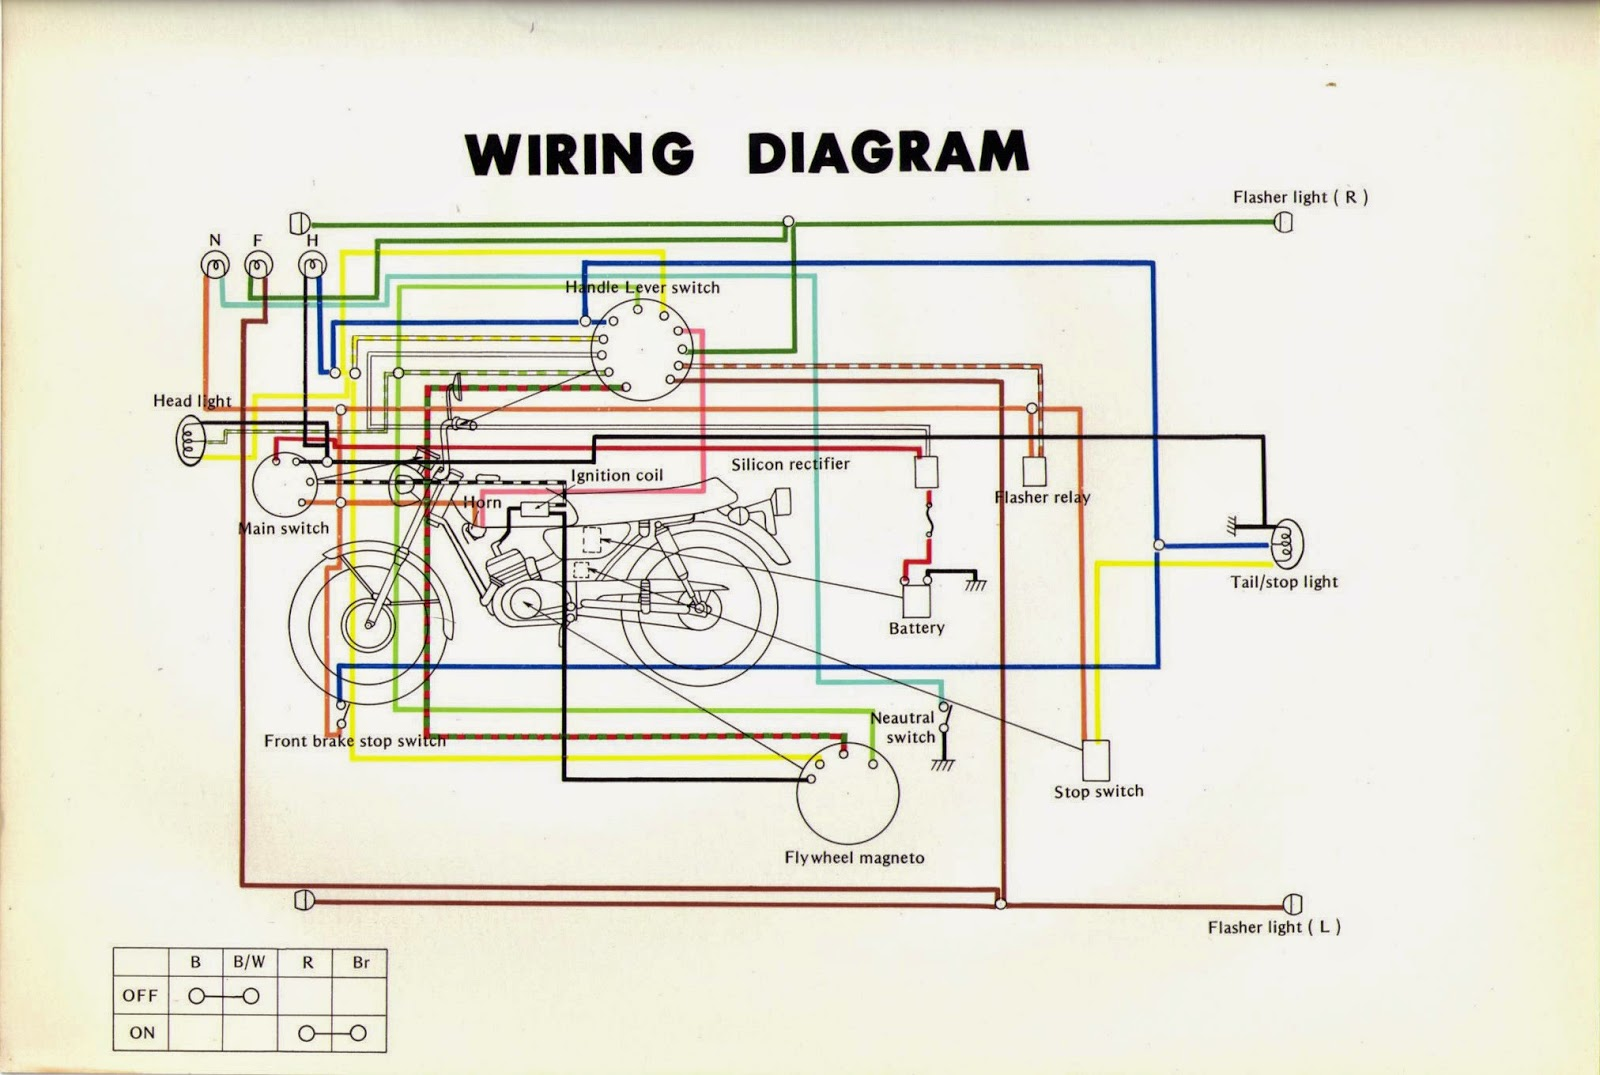 ignition switch wiring diagram 1973 dt3 yamaha motorcycle restoration yamaha ls3 1972: october 2014 #13